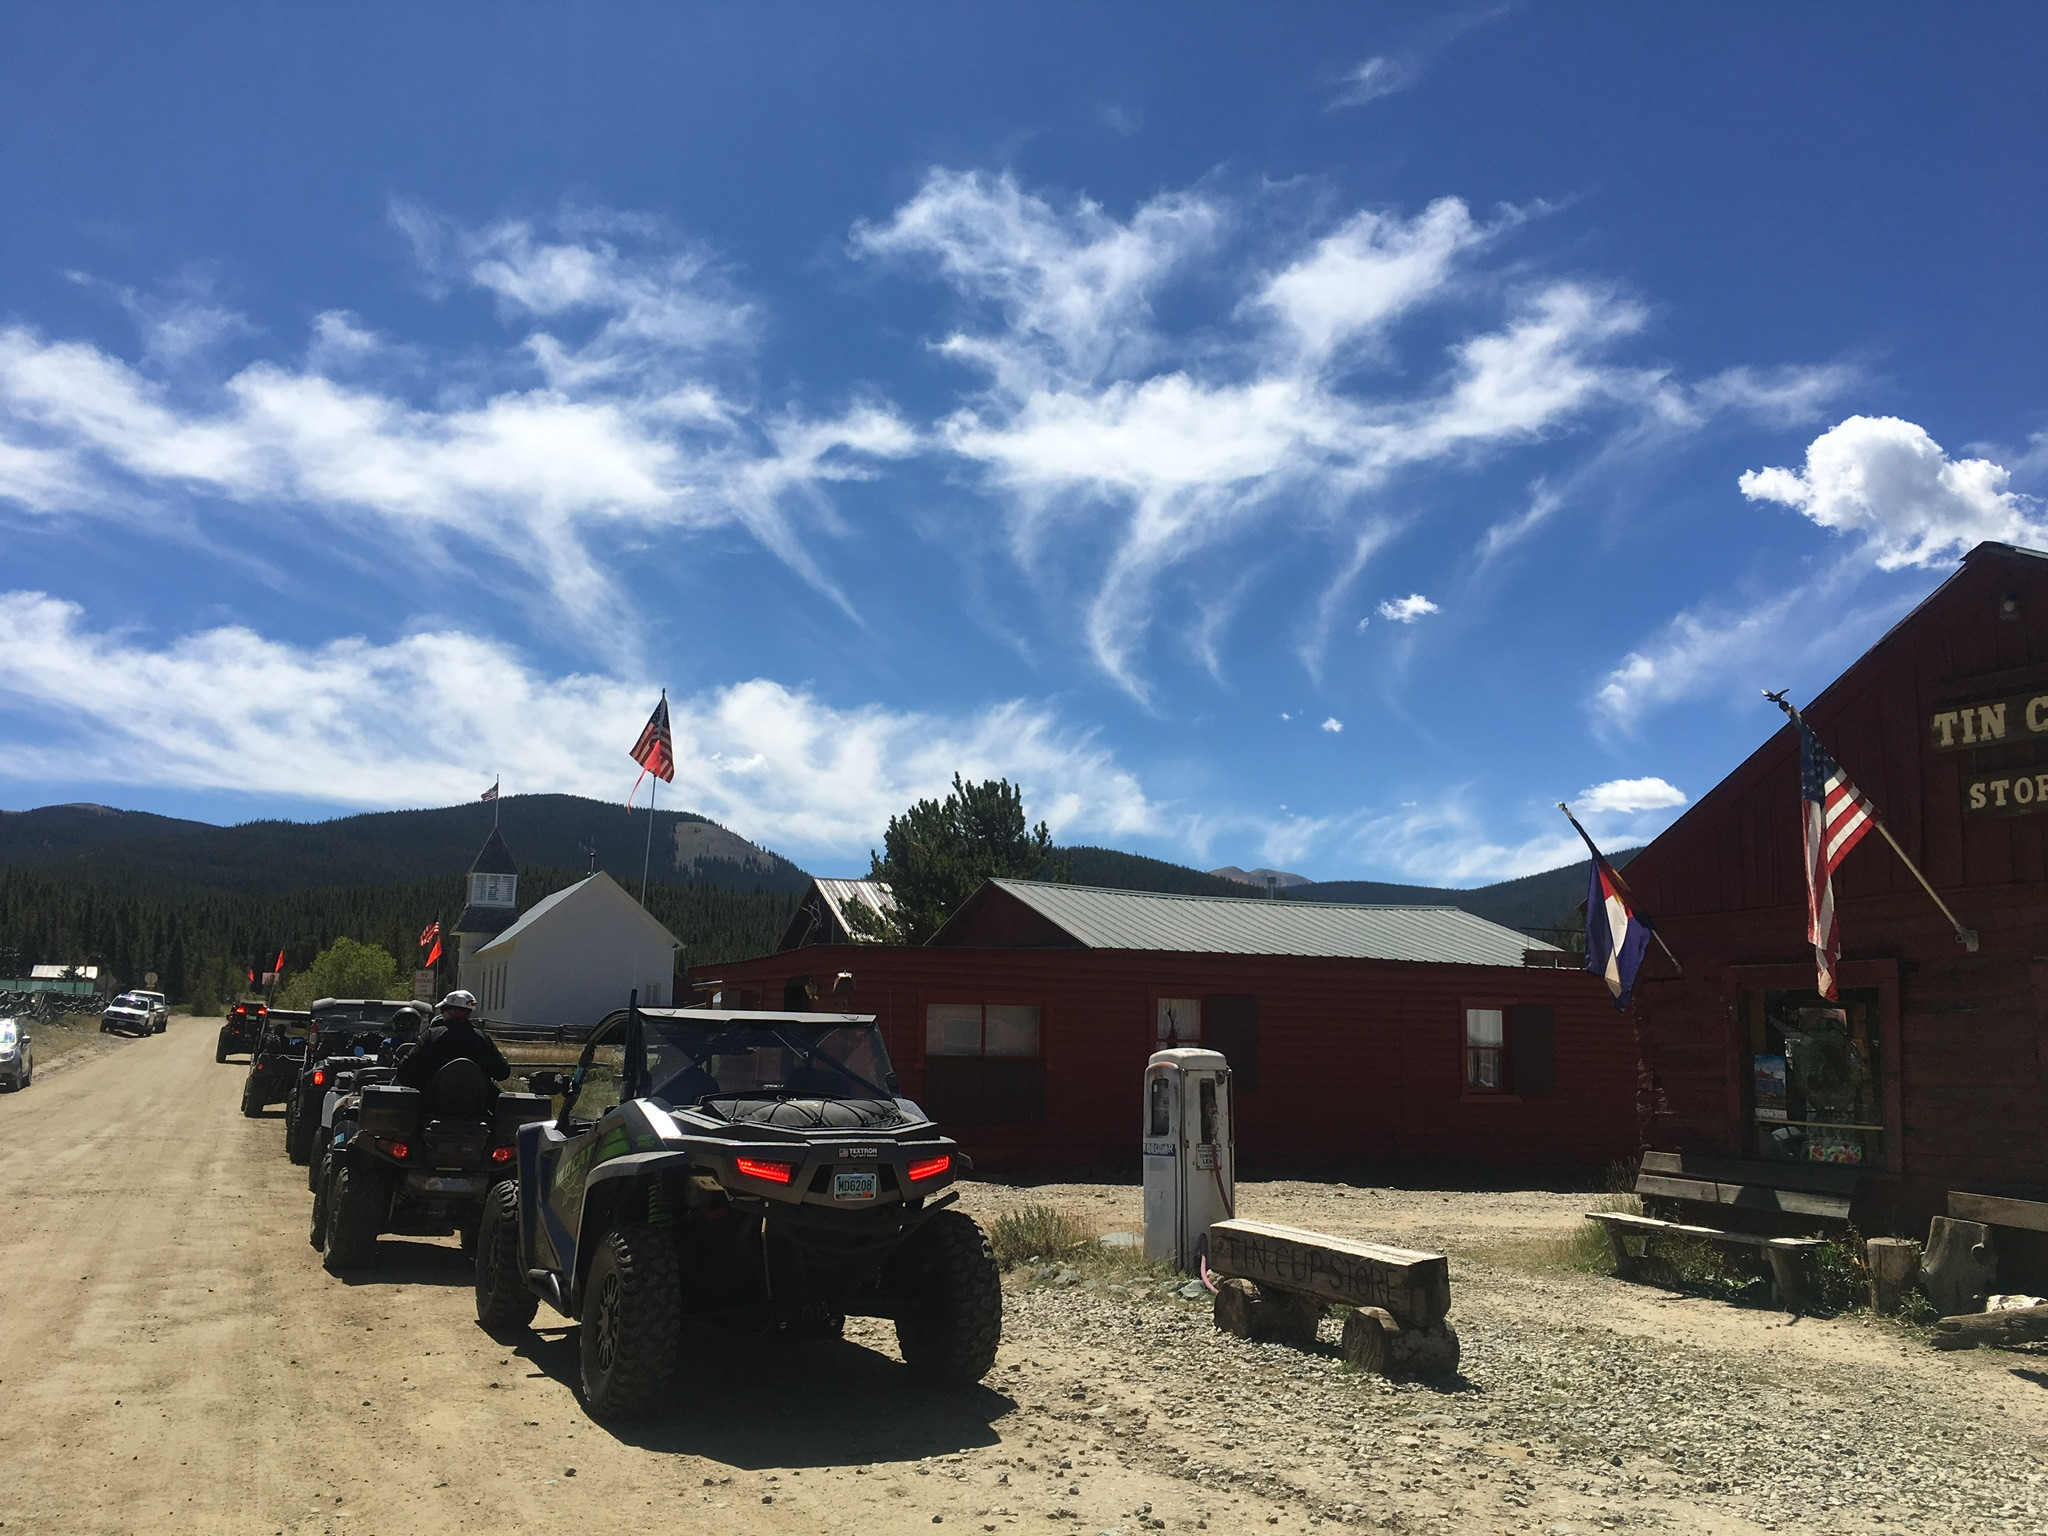 <p>ATVs line up on a road in Tin Cup, a small mining town in Gunnison County.</p>